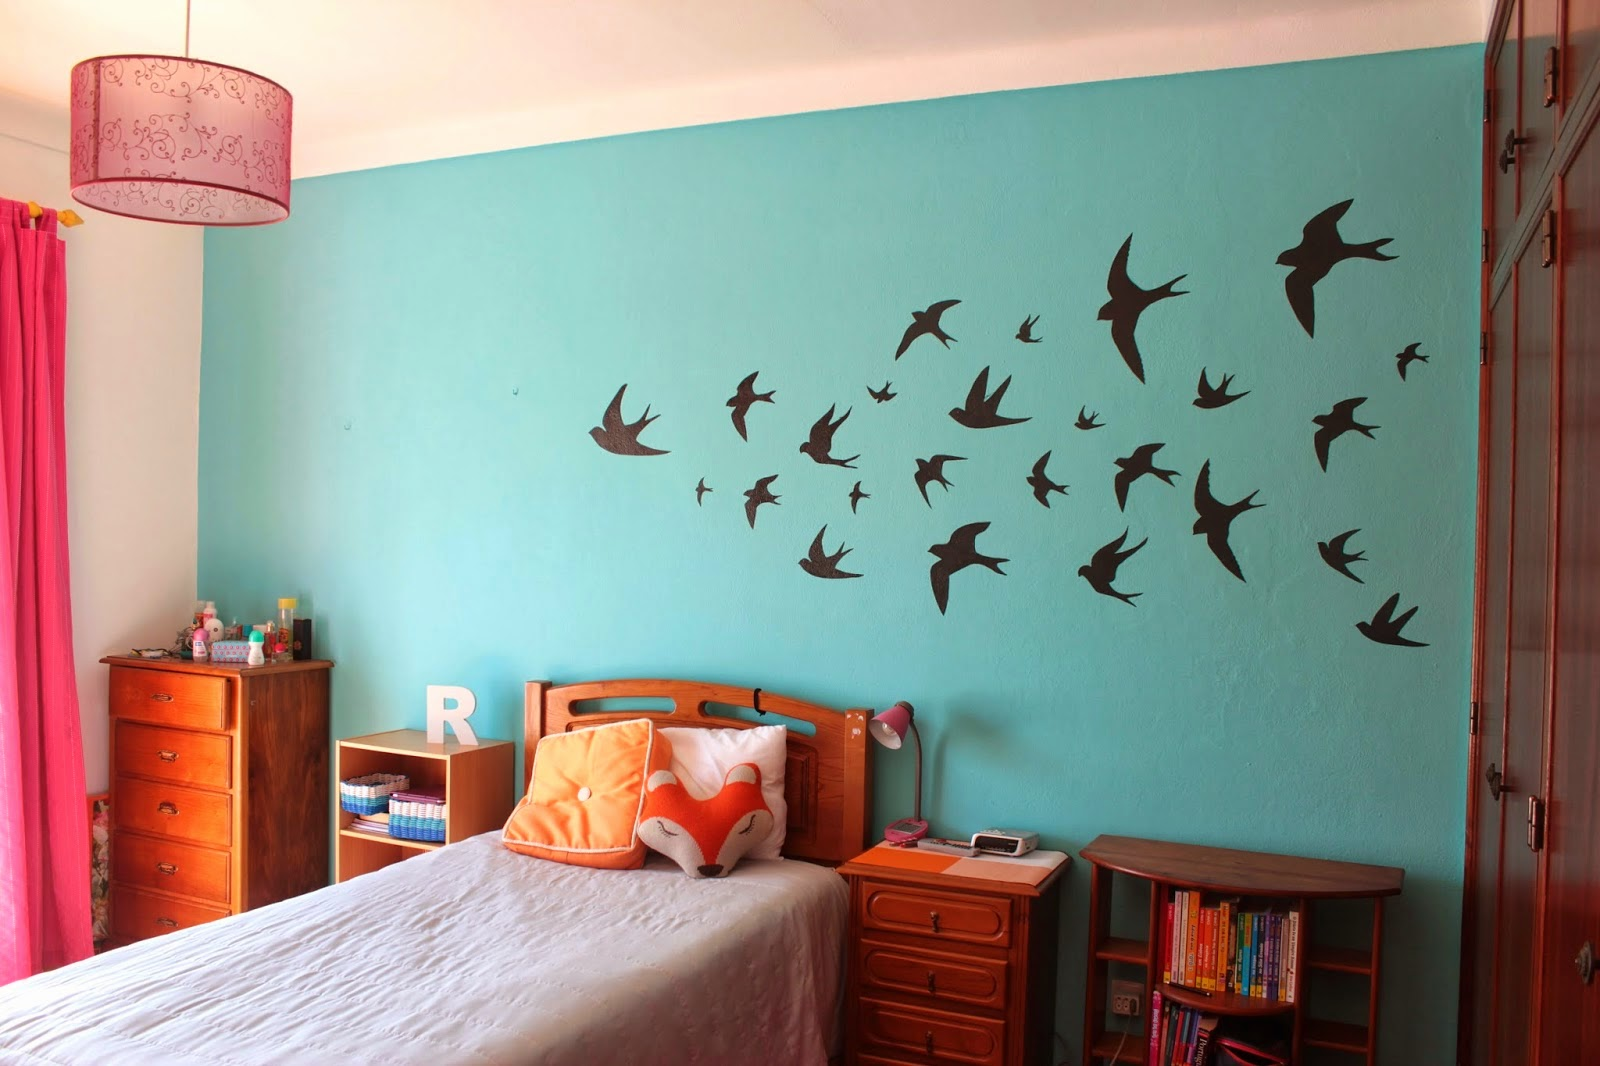 http://curlymade.blogspot.pt/2014/03/swallows-wall-decor.html